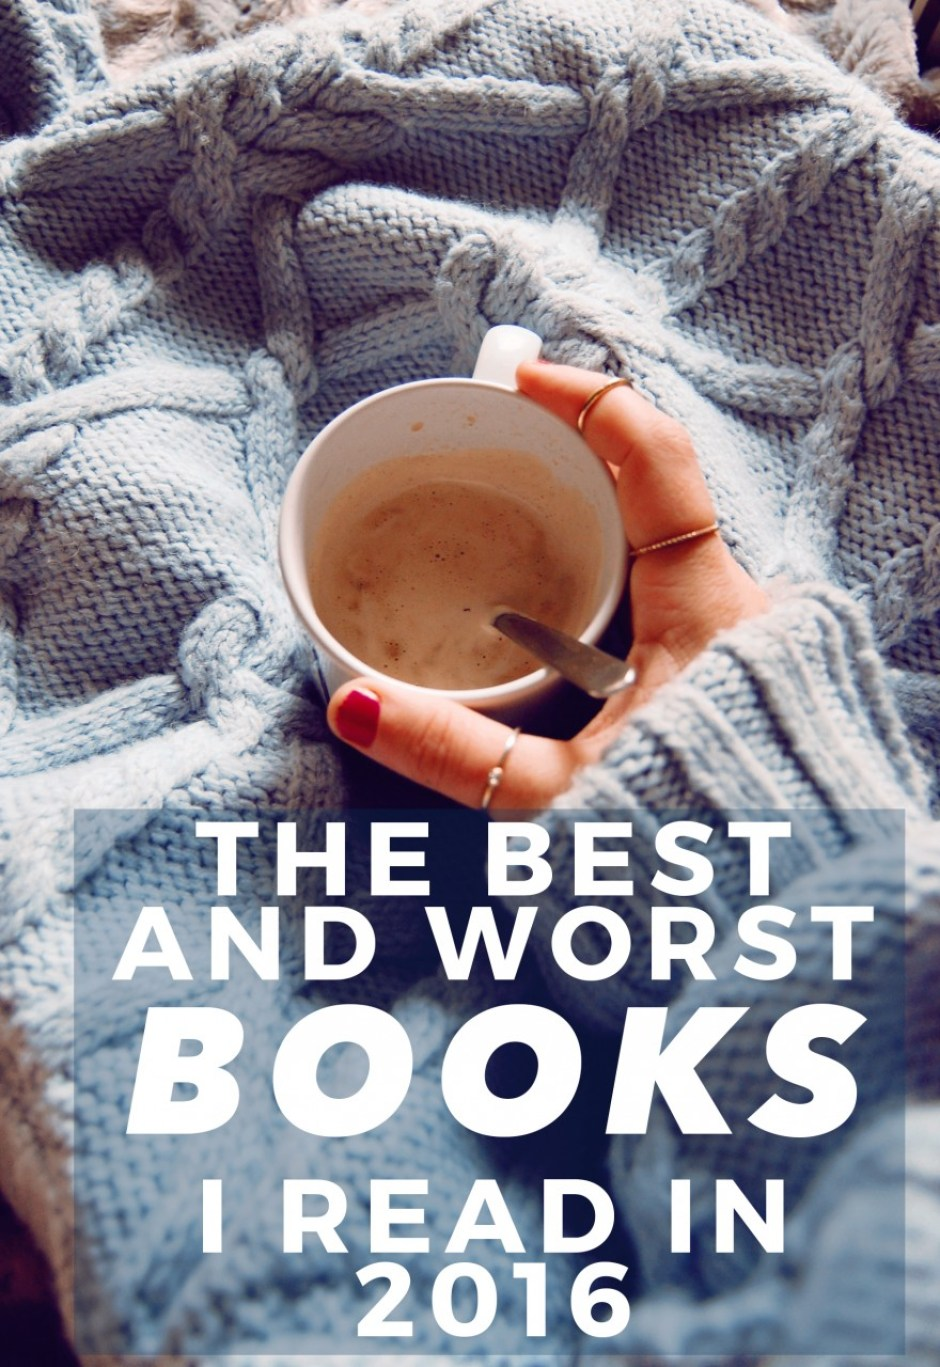 the best and worst books i read in 2016